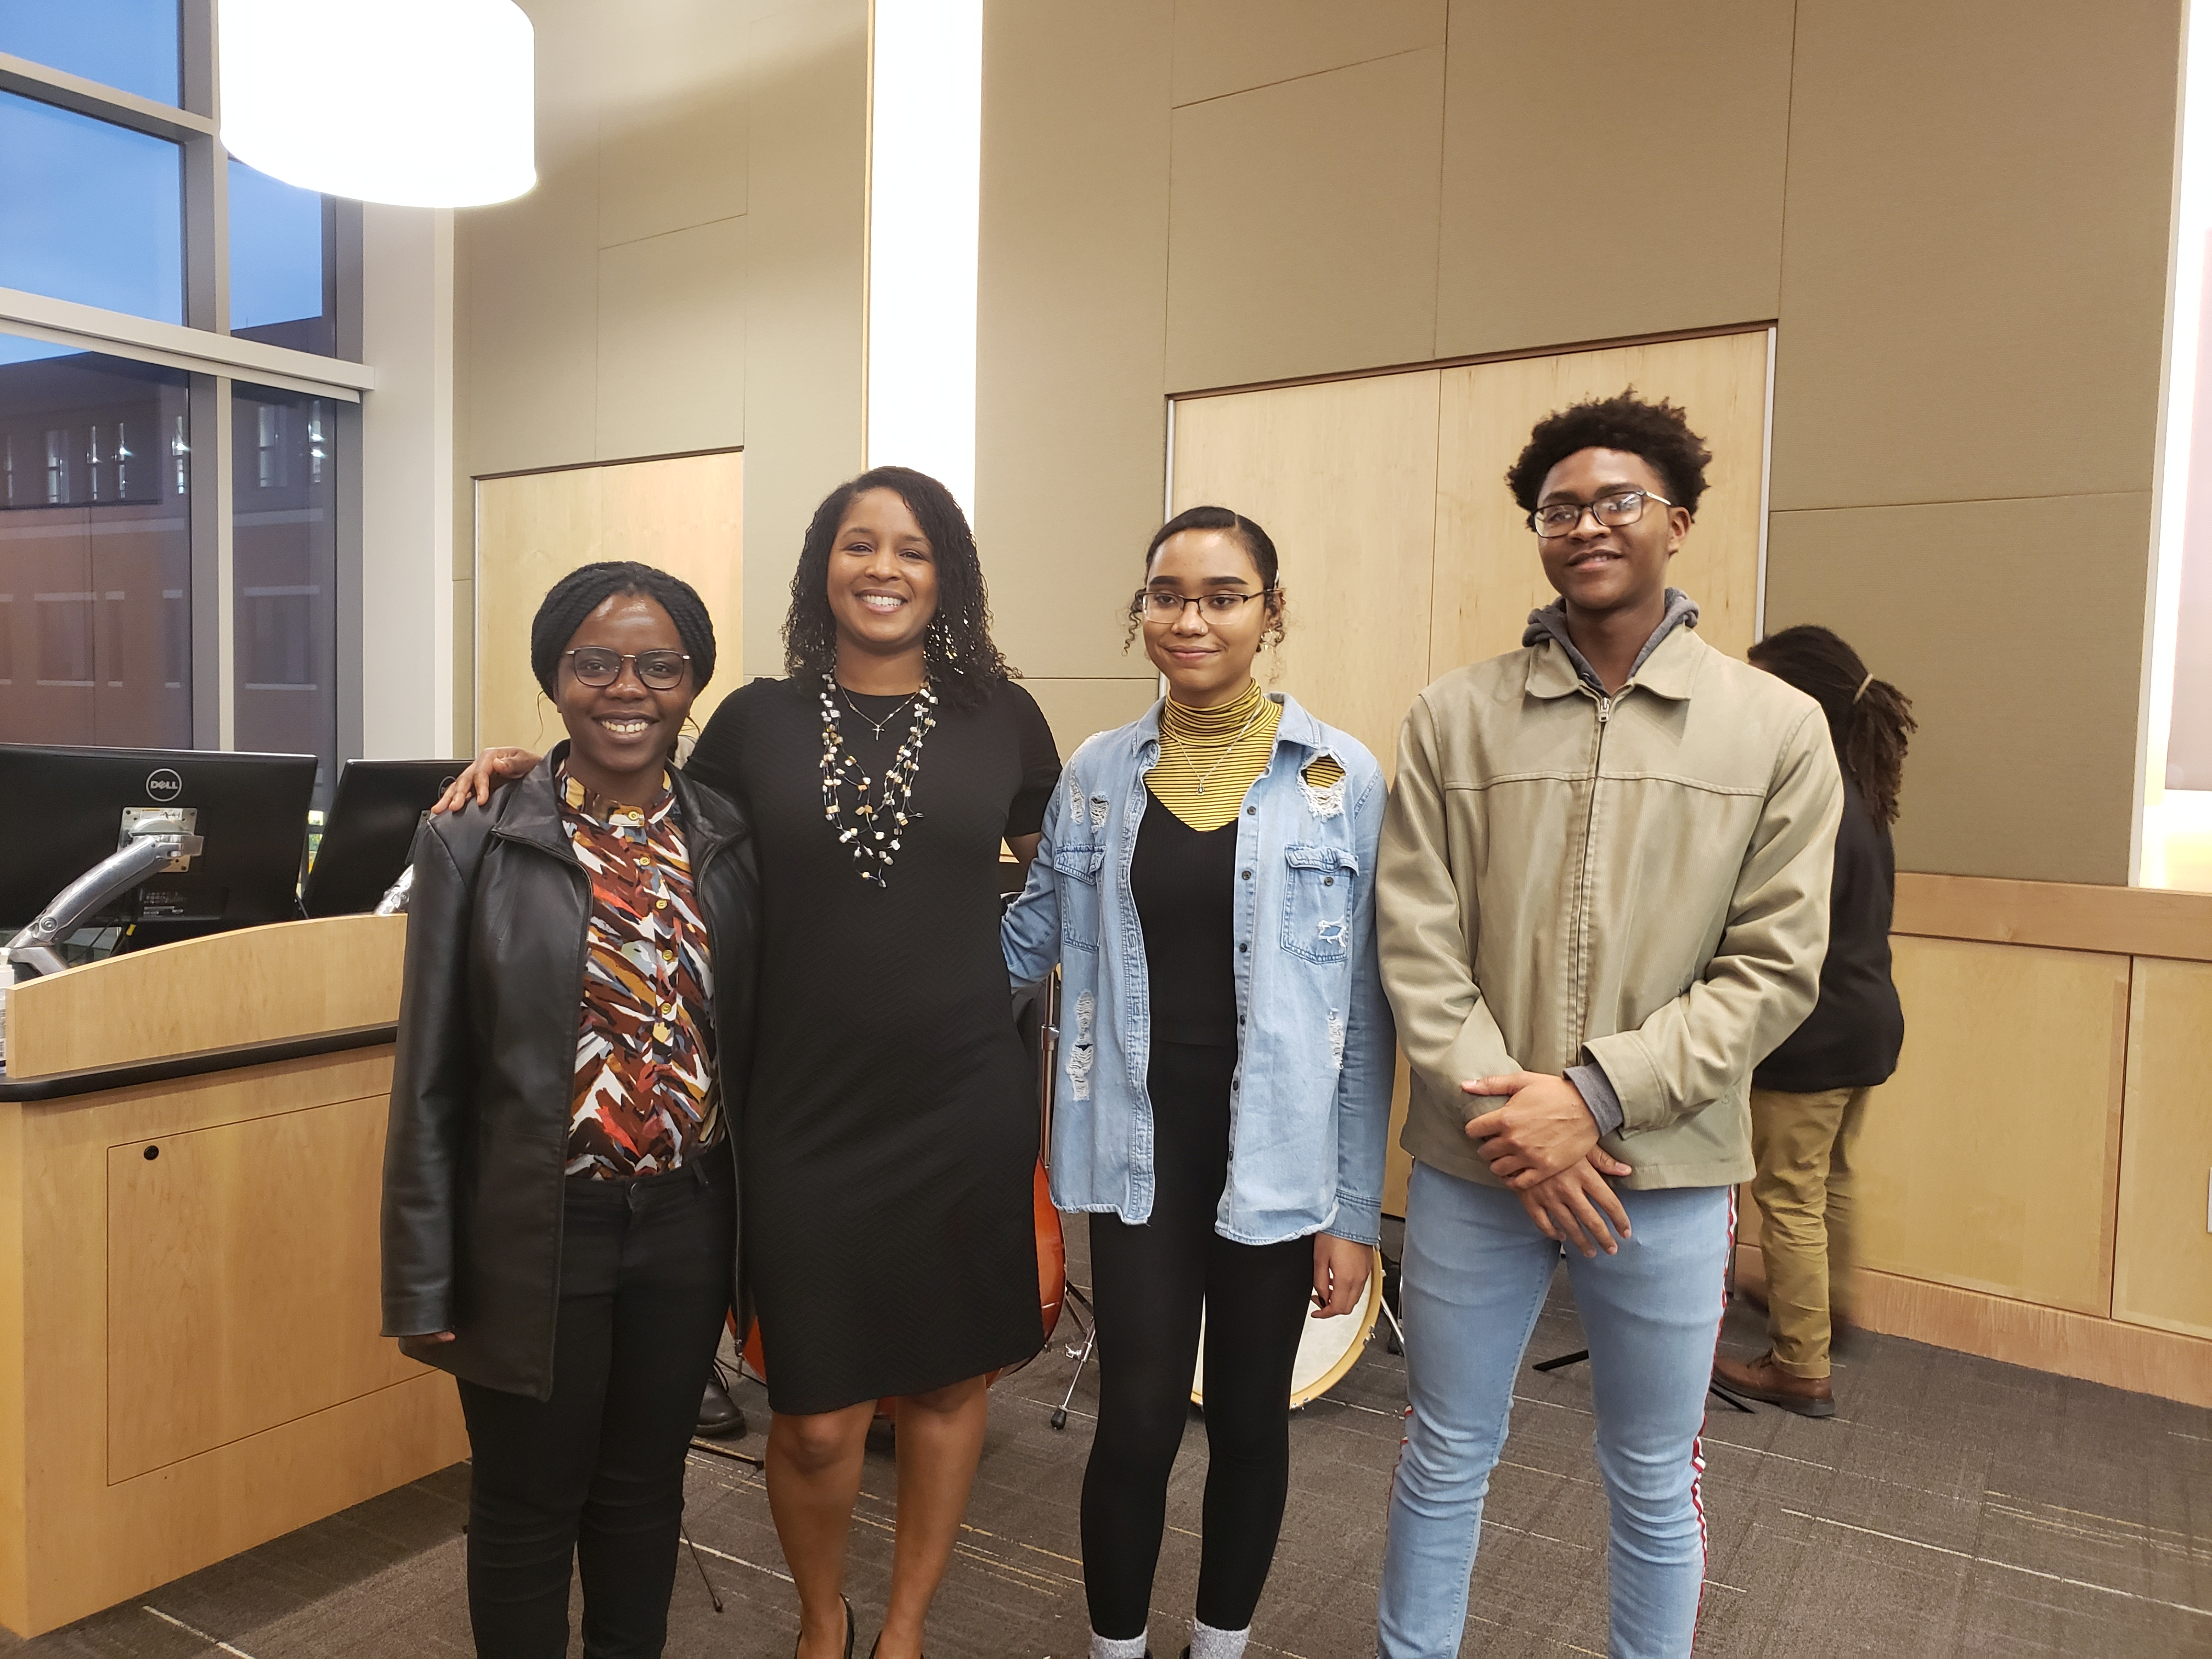 Four students who are the recipient of the 2019 Life Sciences Black History in the Making awards